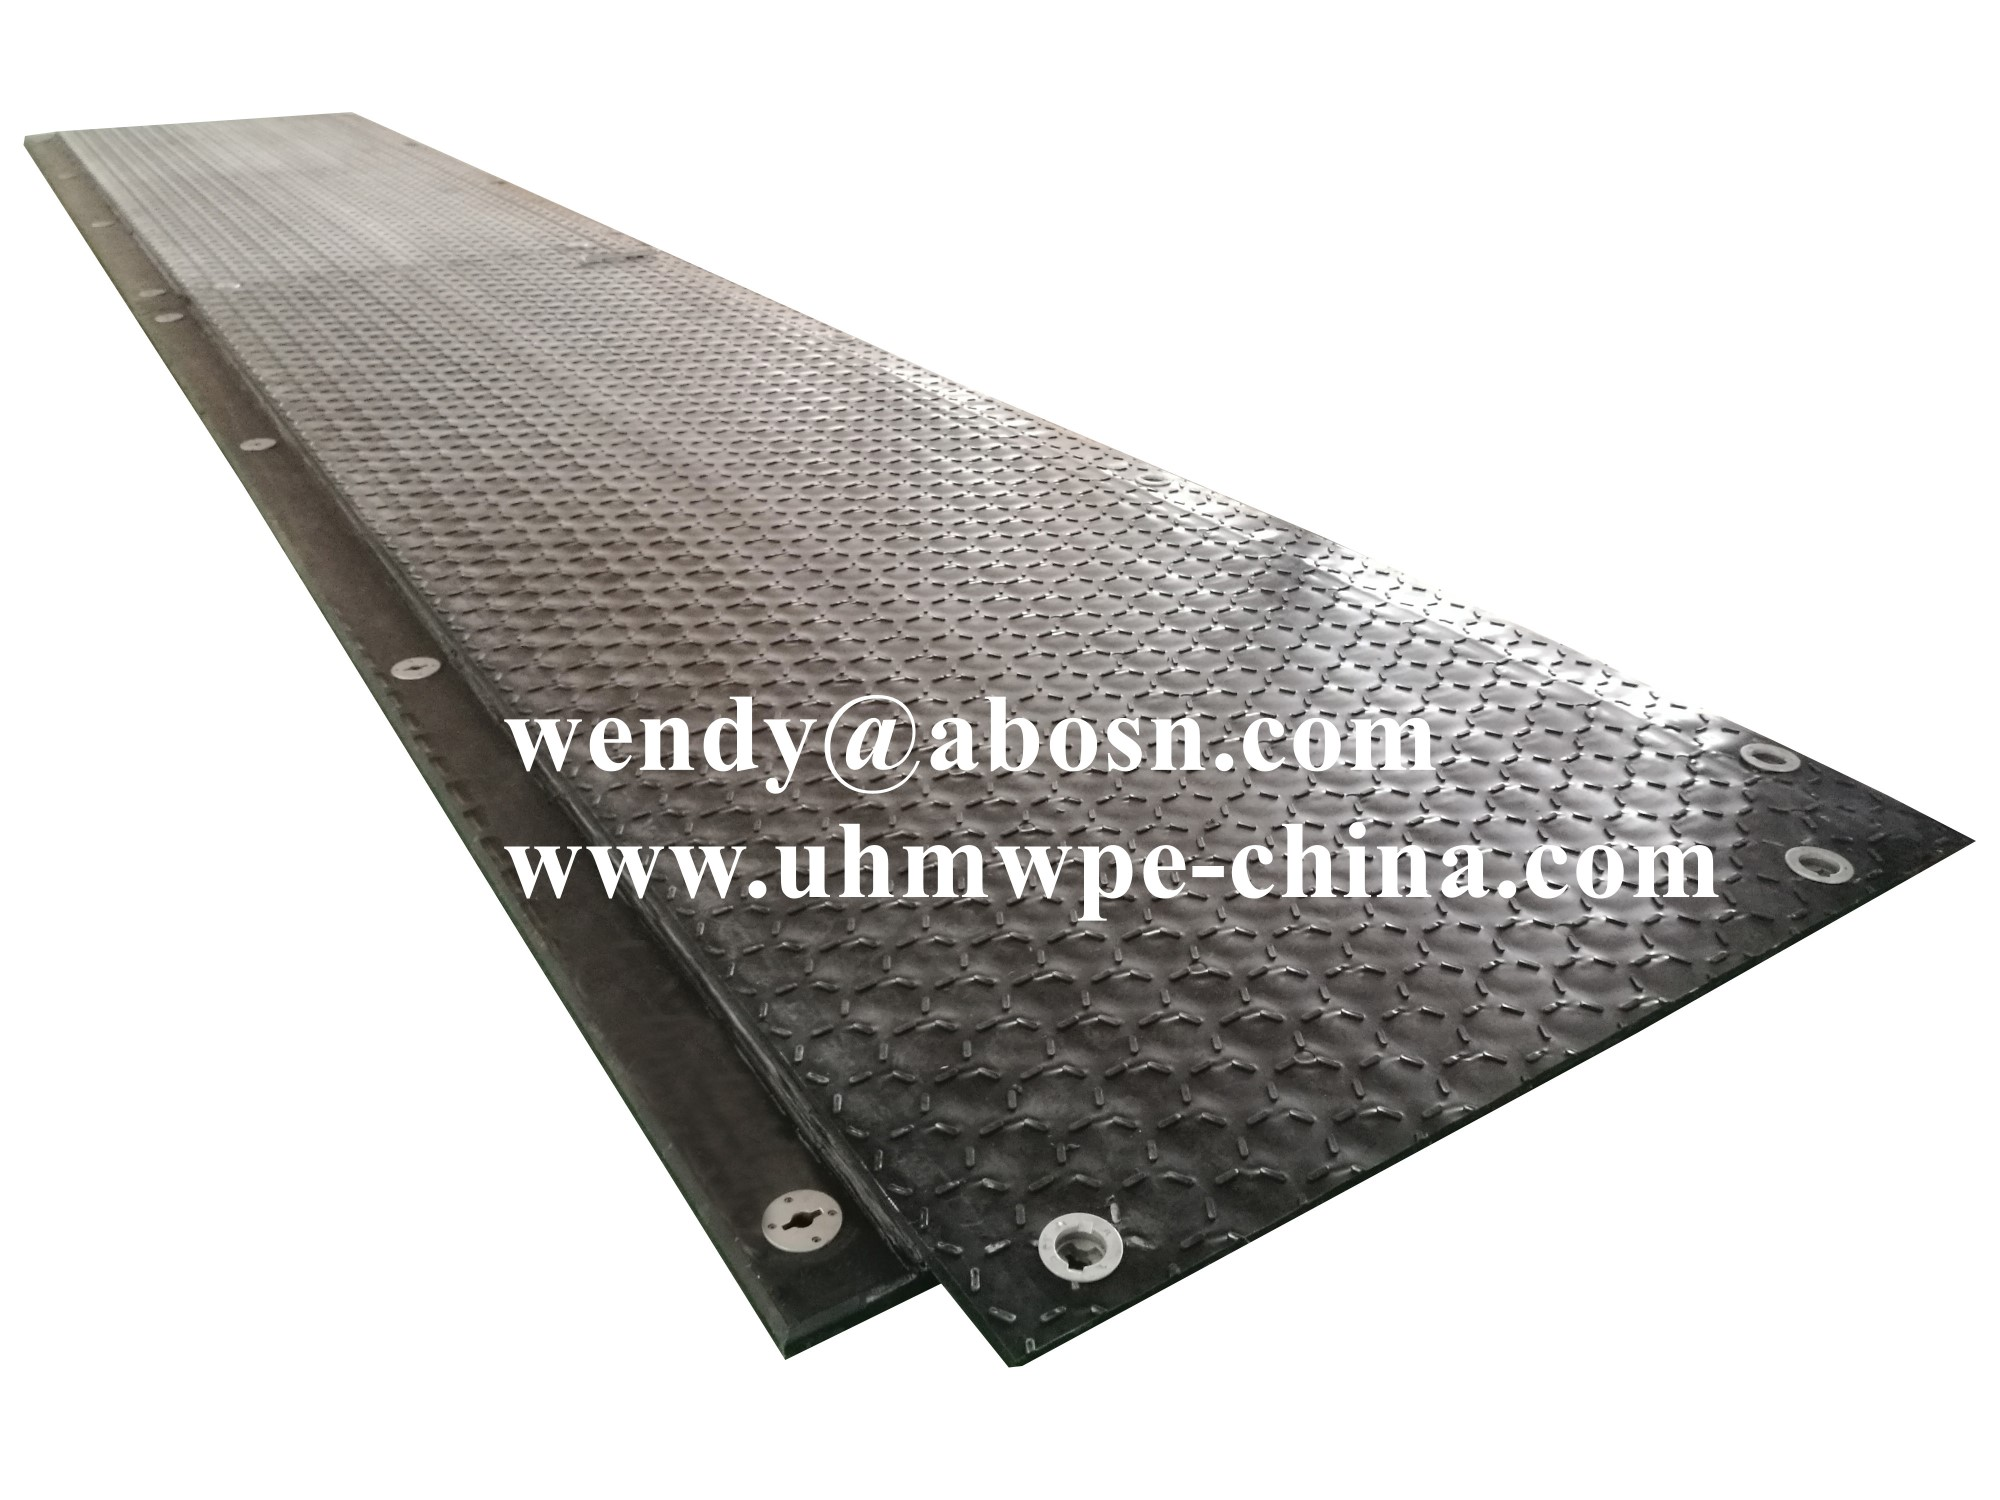 Heavy Duty Composite Mats